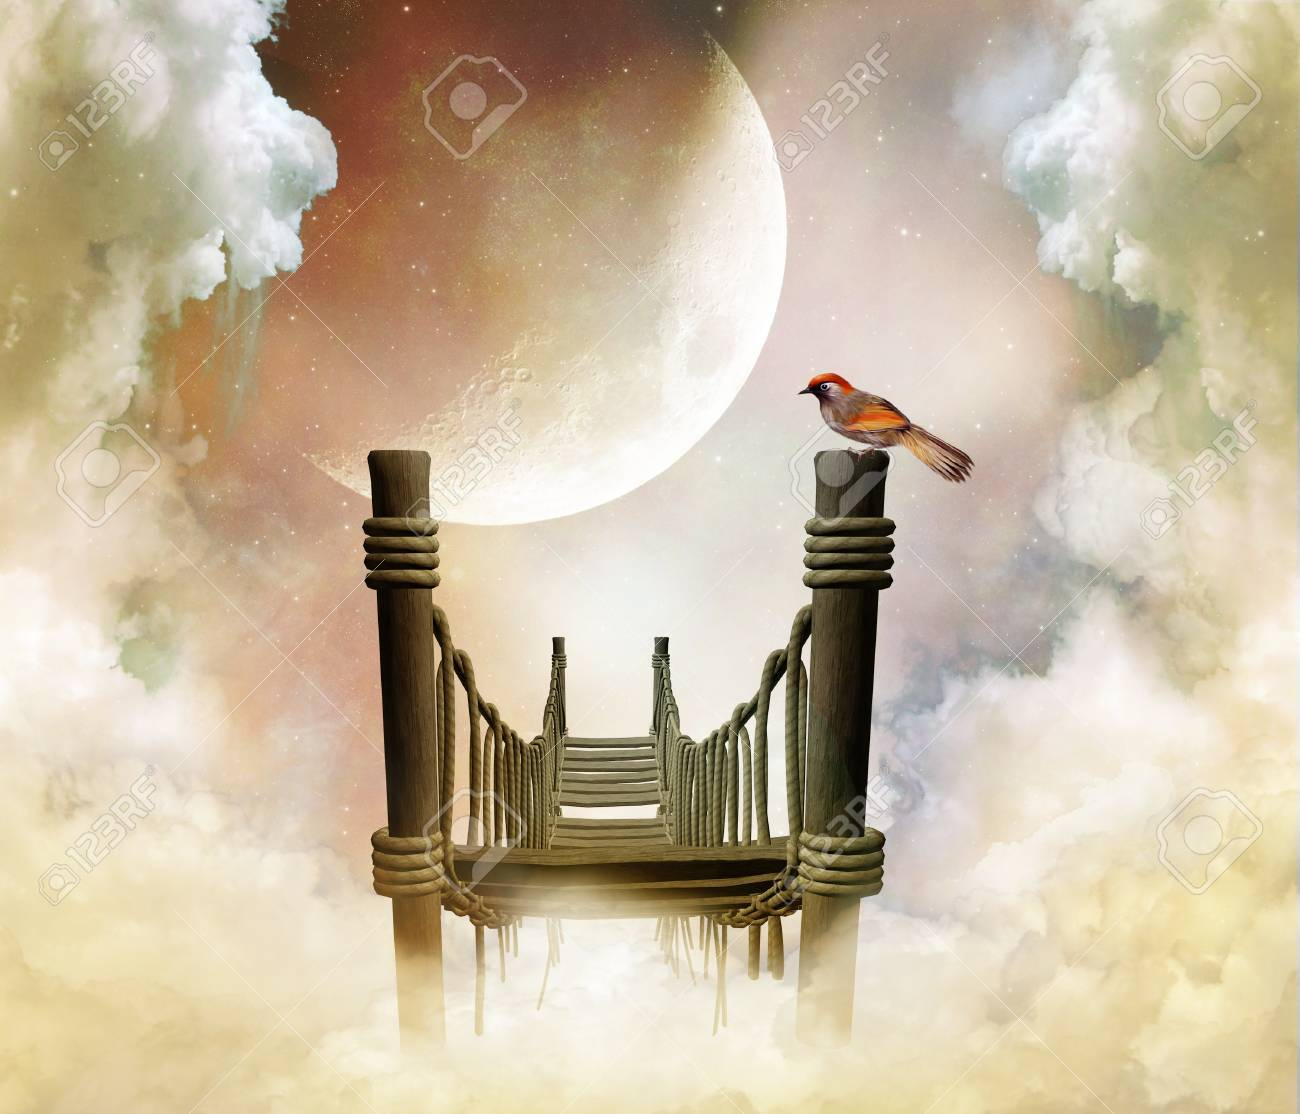 fantastic wooden bridge with a bird in the sky with a big moon - 28036089